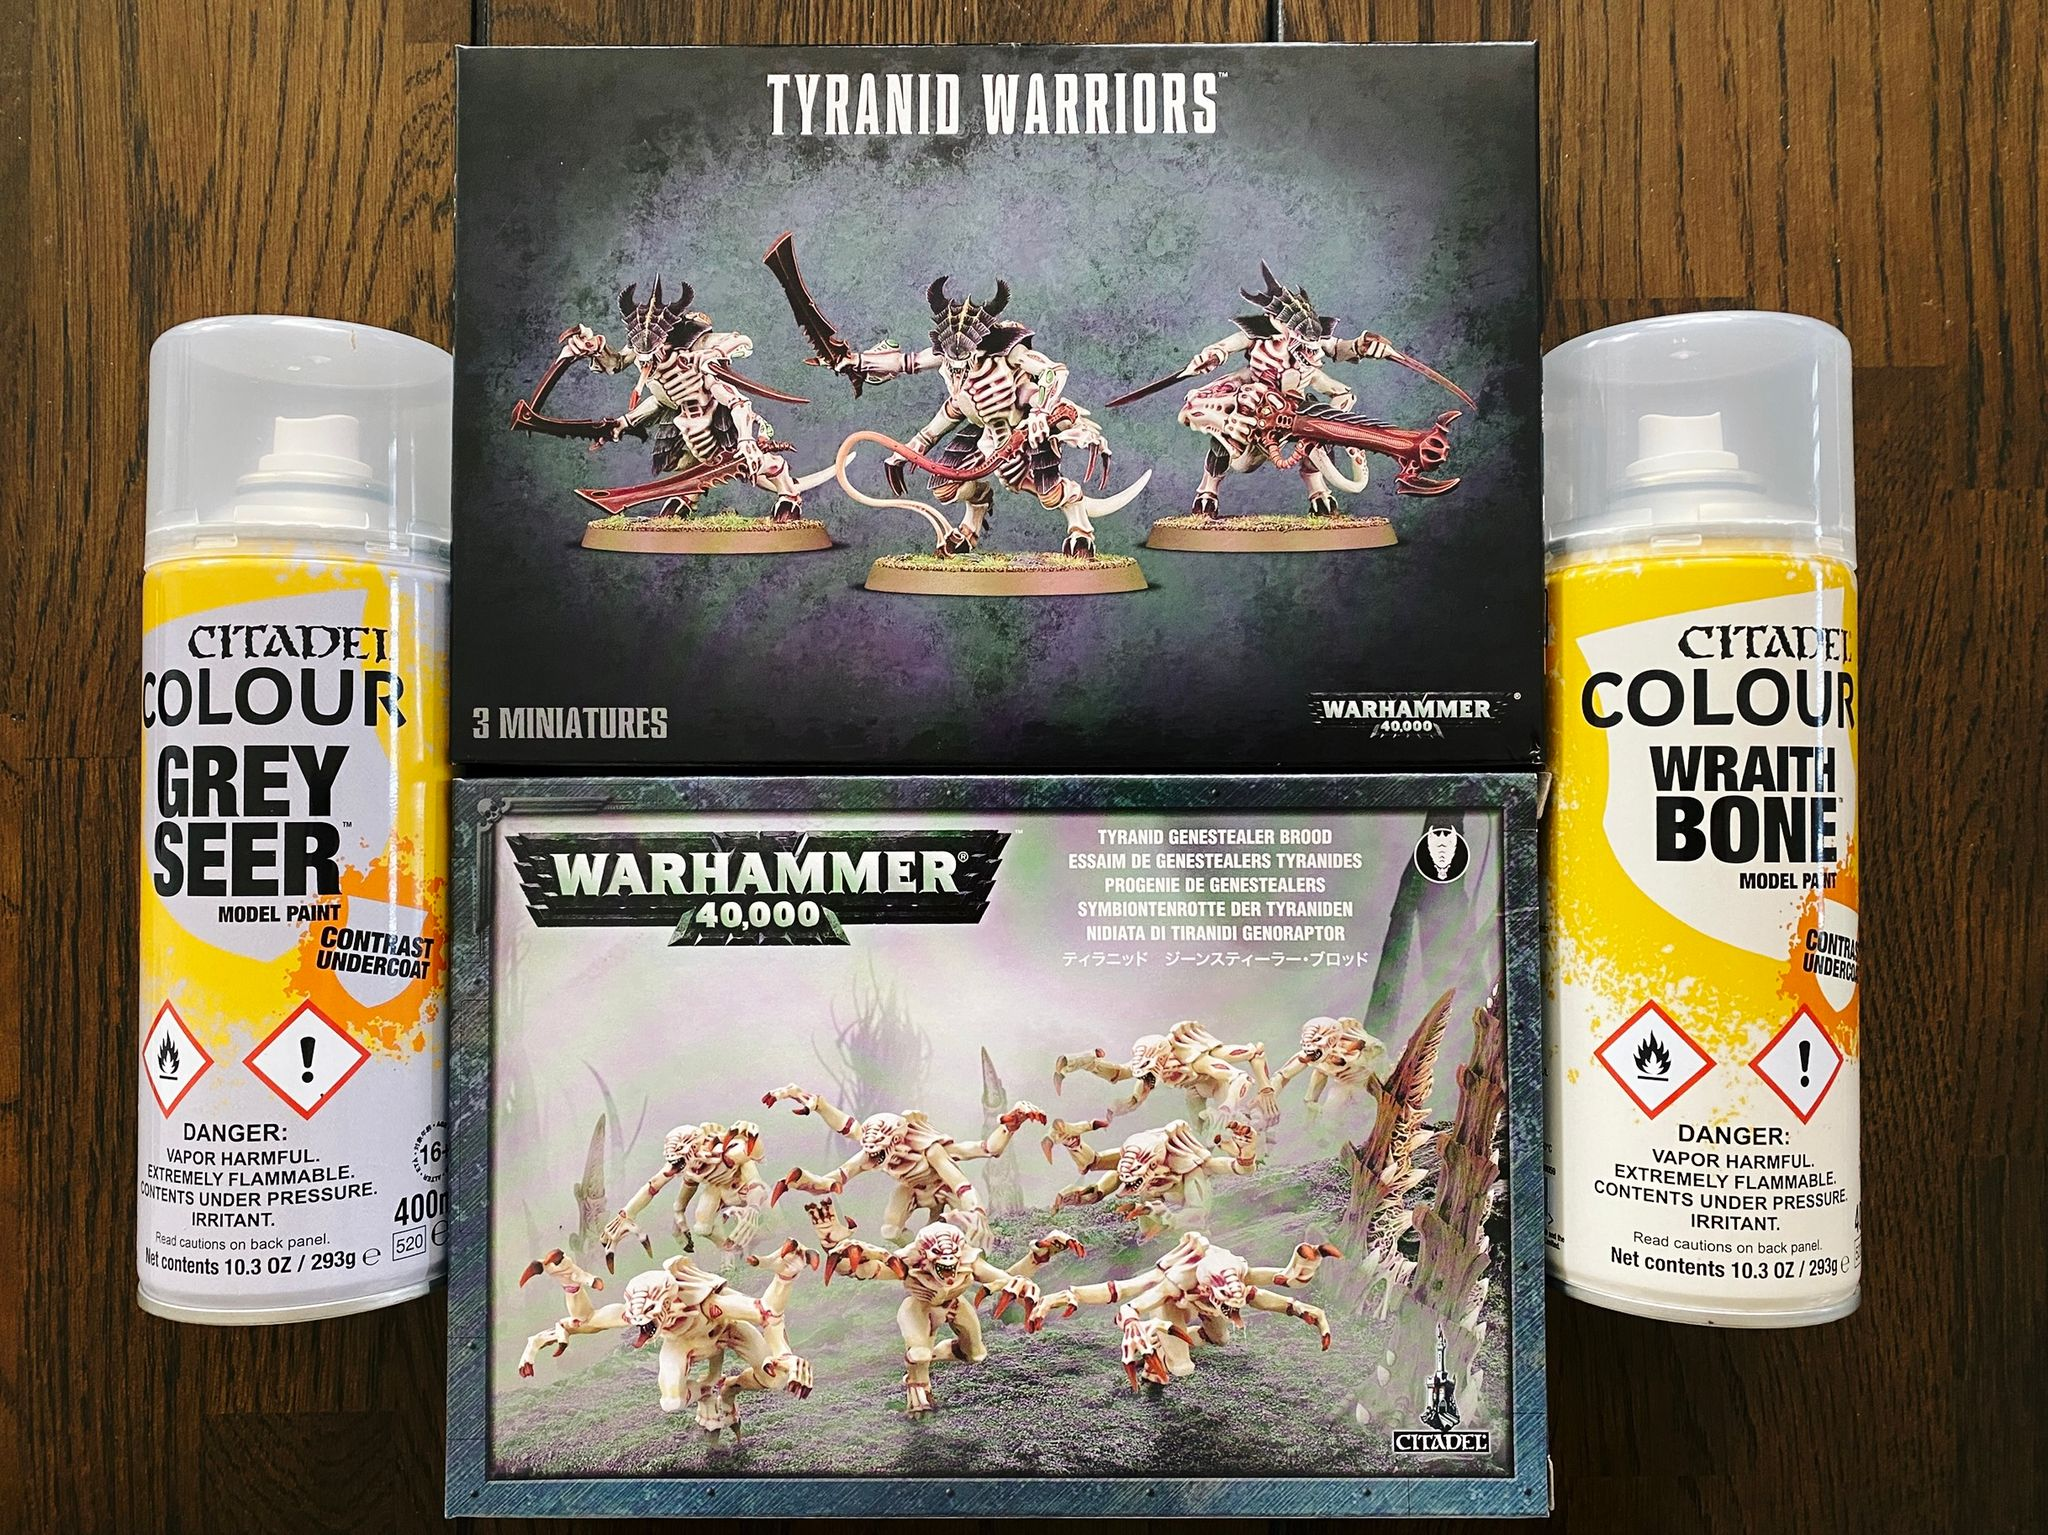 A photo of two cans of Games Workshop undercoat spray paints, a box of Tyranid Warriors (four-armed Aliens-esque towering freaky alien things) and a box of Genestealers (also four-armed freaky alien things, but smaller and more hunched over).